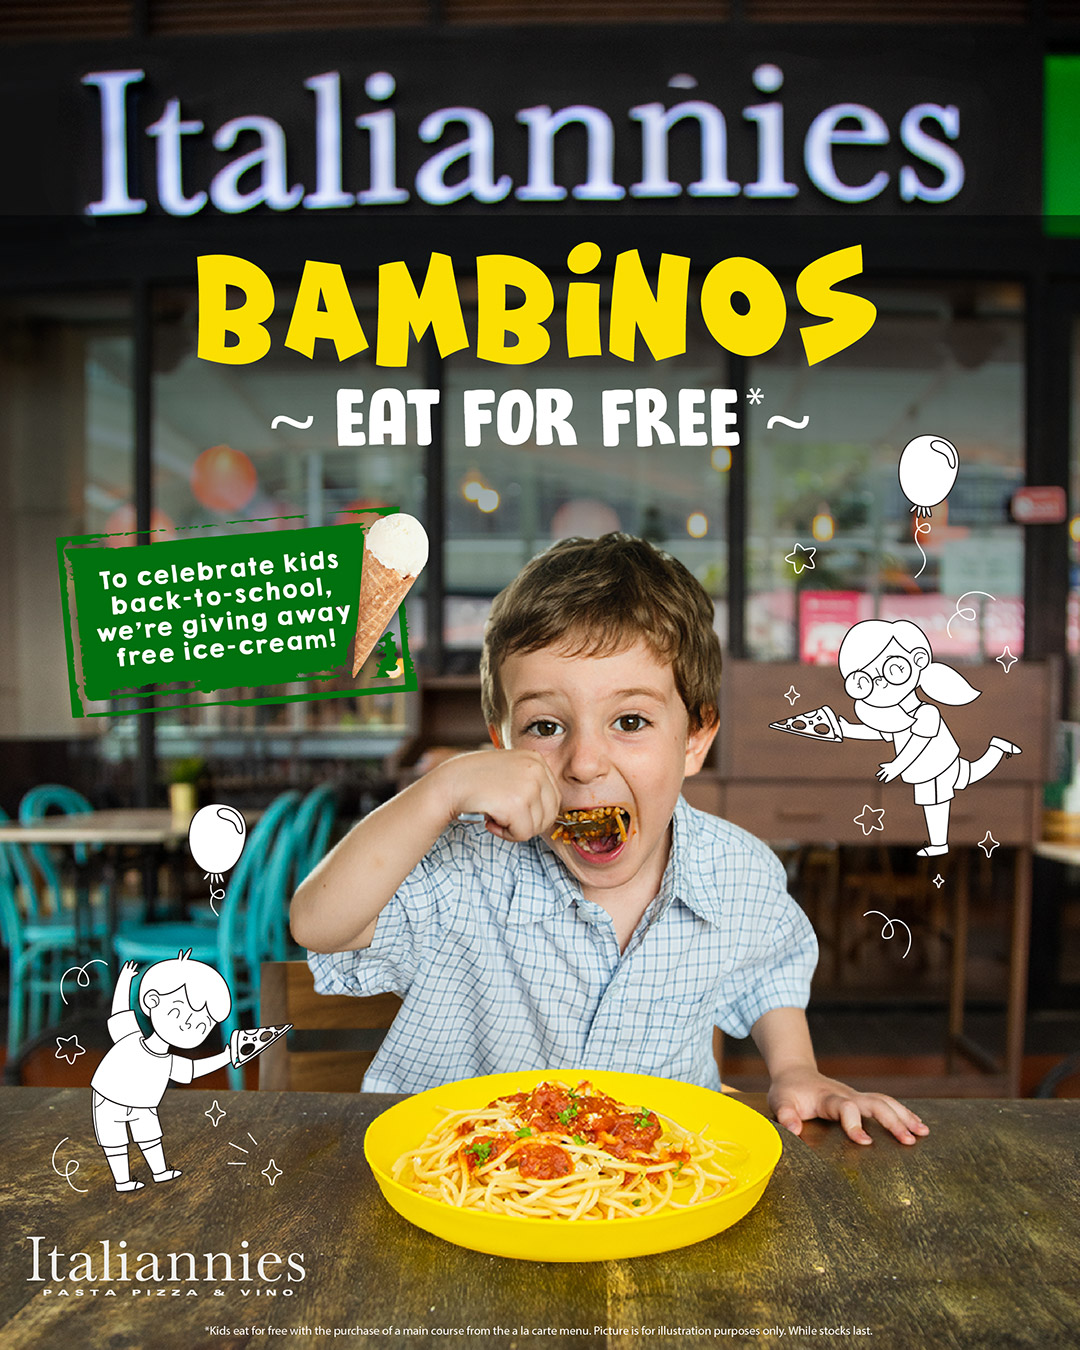 Bambinos Eat for Free